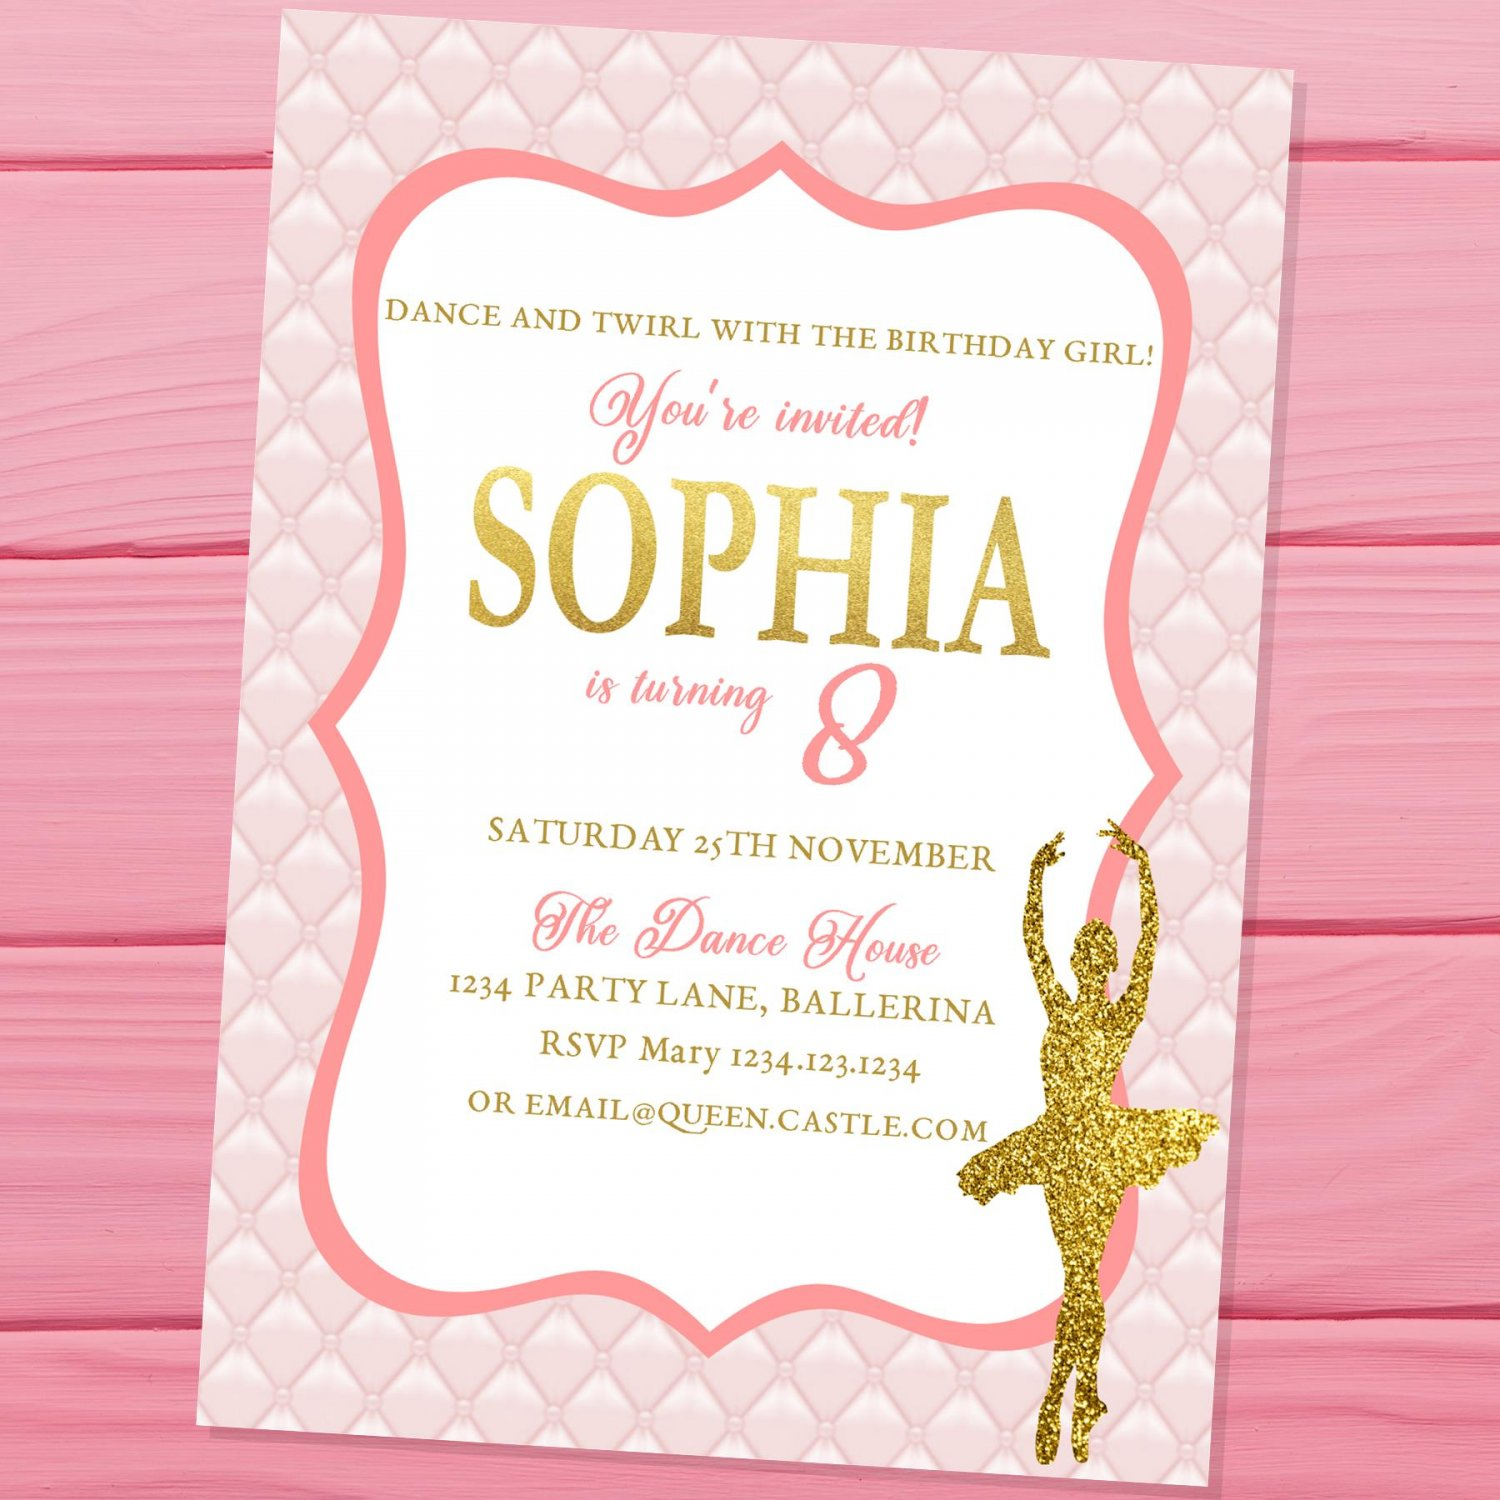 Ballerina Invitation Design 1 Princess Pink Gold Glitters Elegant Classic Ballet Dancer Dance